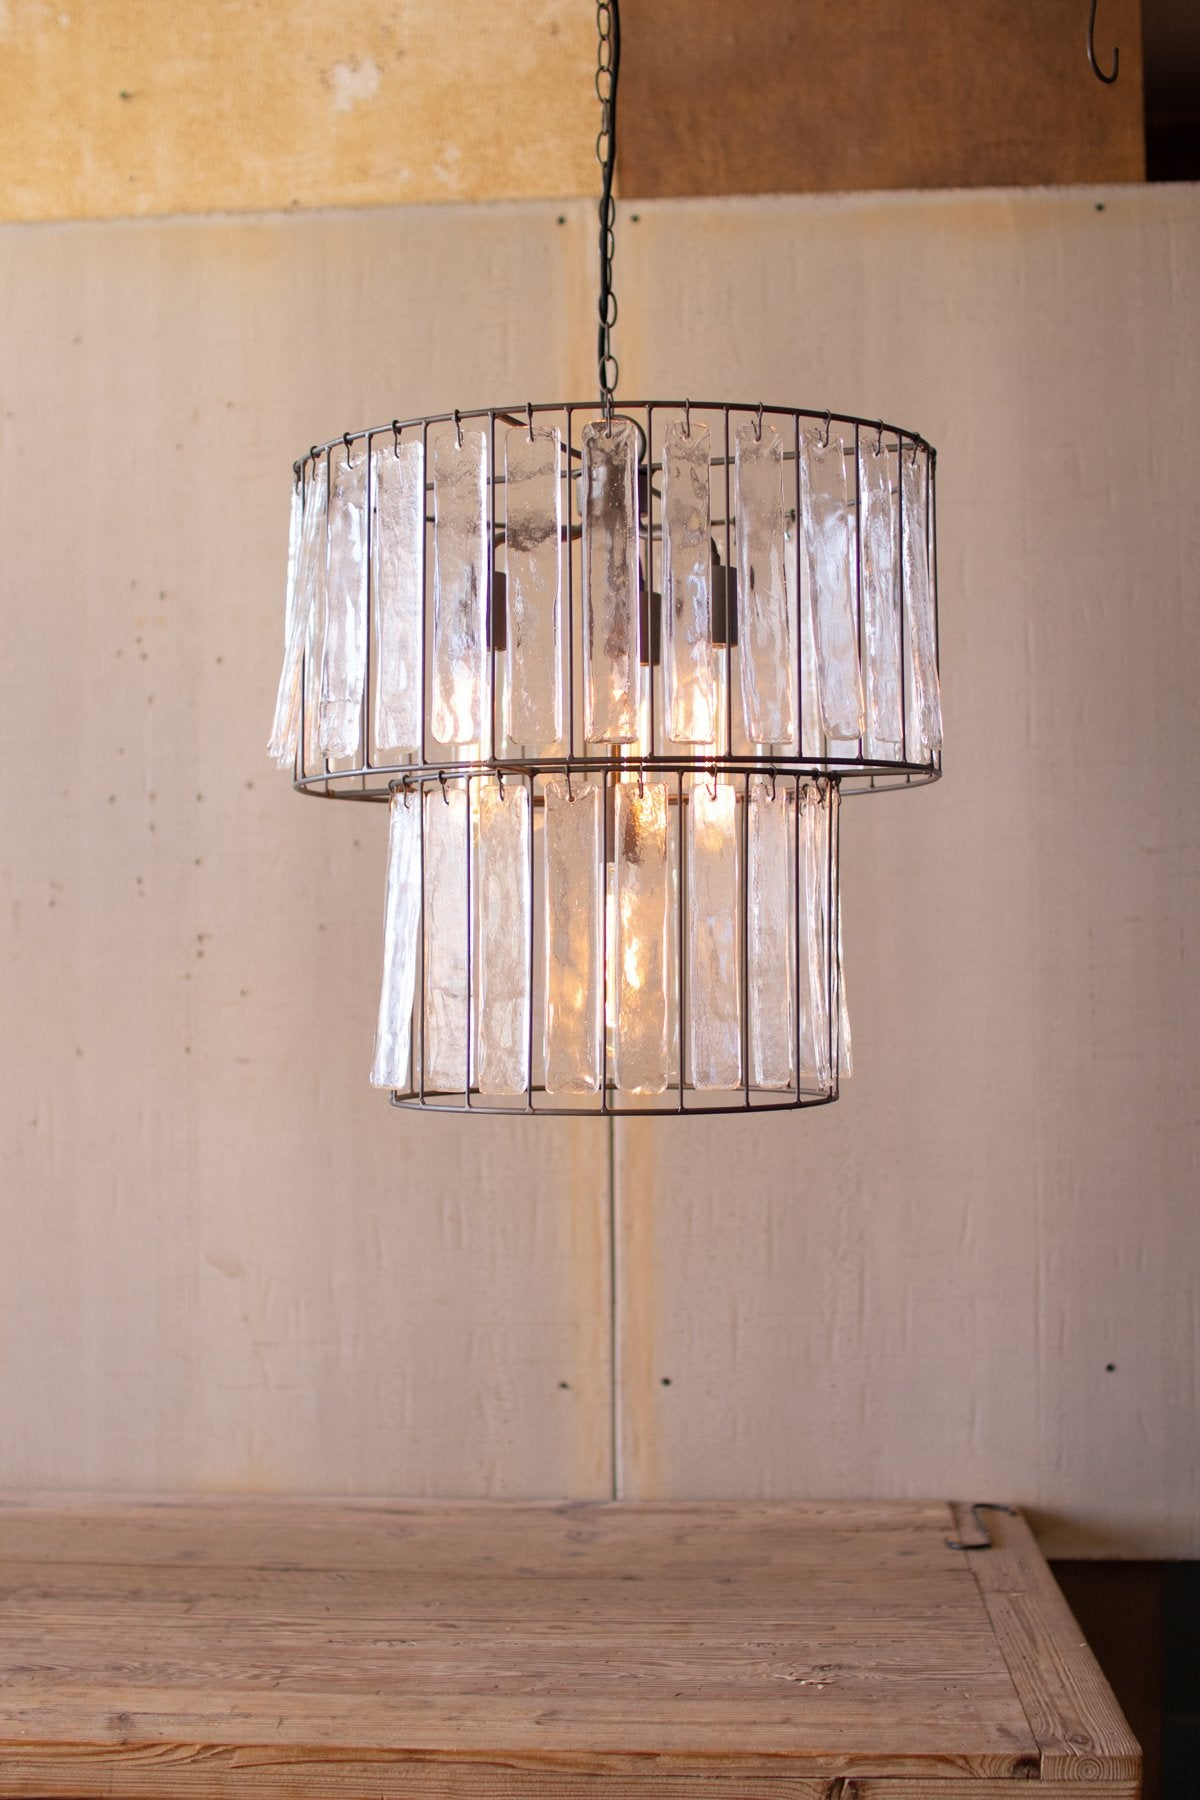 Two Tiered Round Pendant Light With Glass Chimes